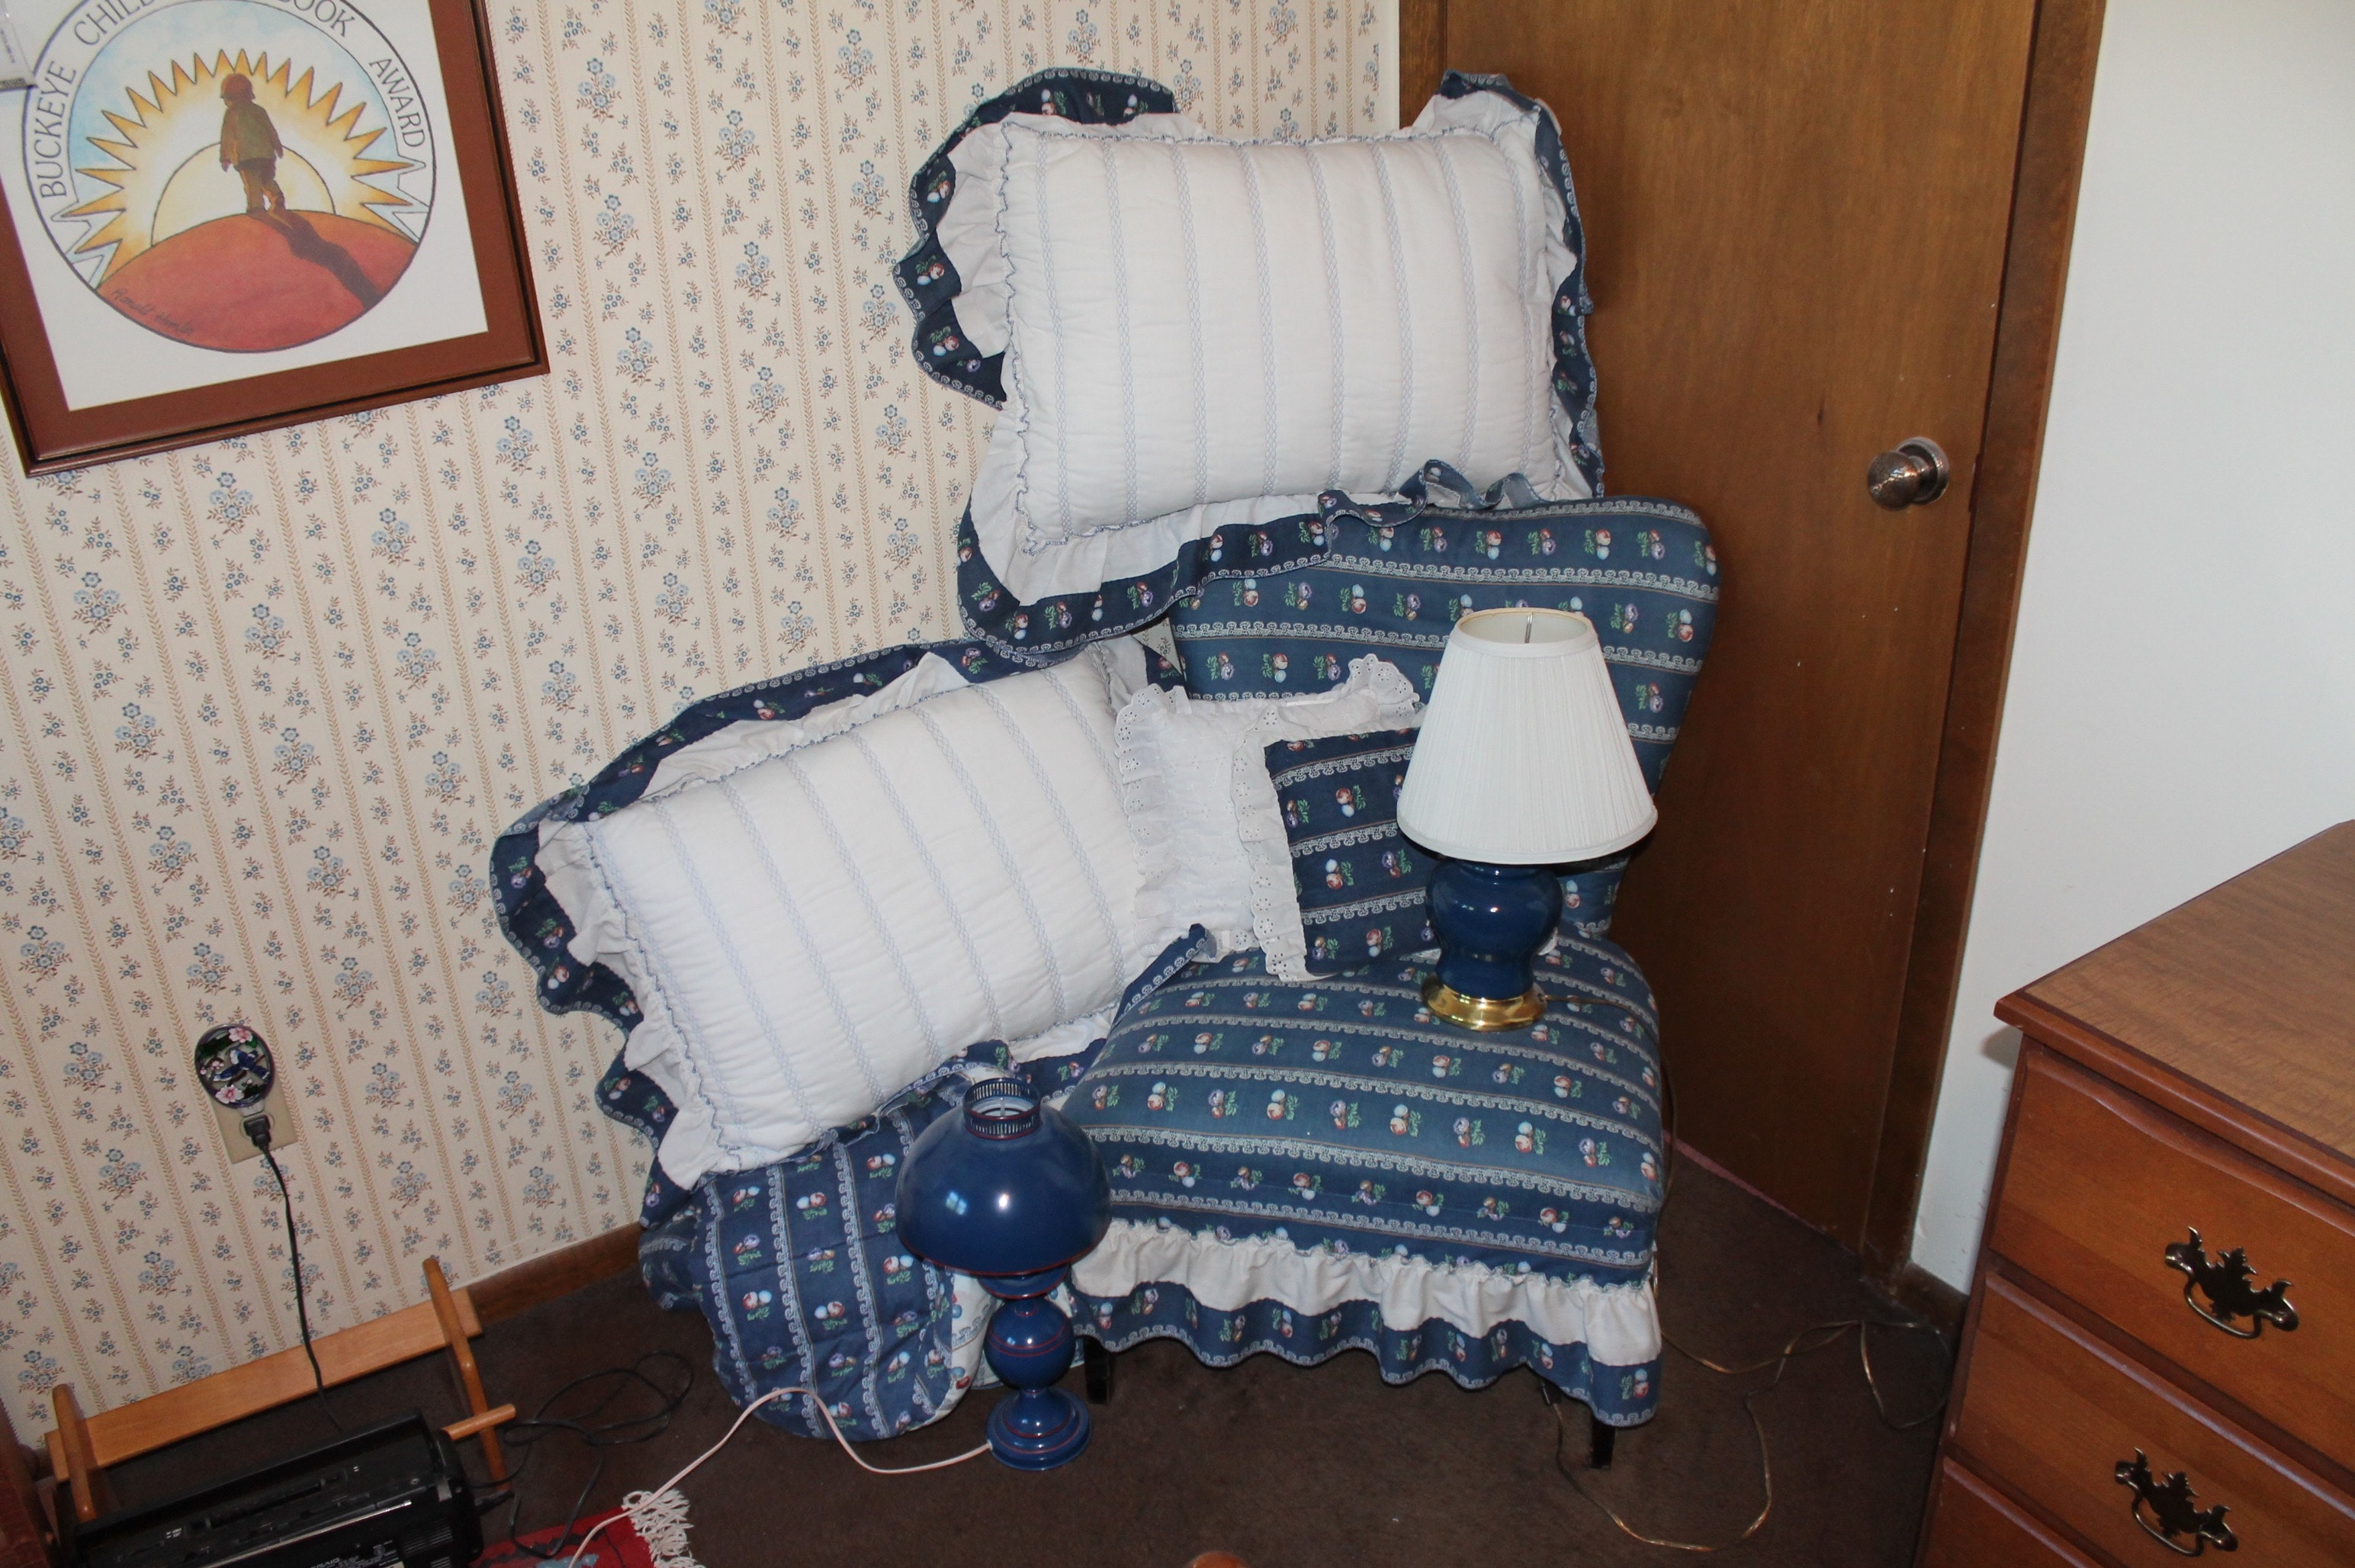 Vintage Chair, Bed Linens, and Table Lamps